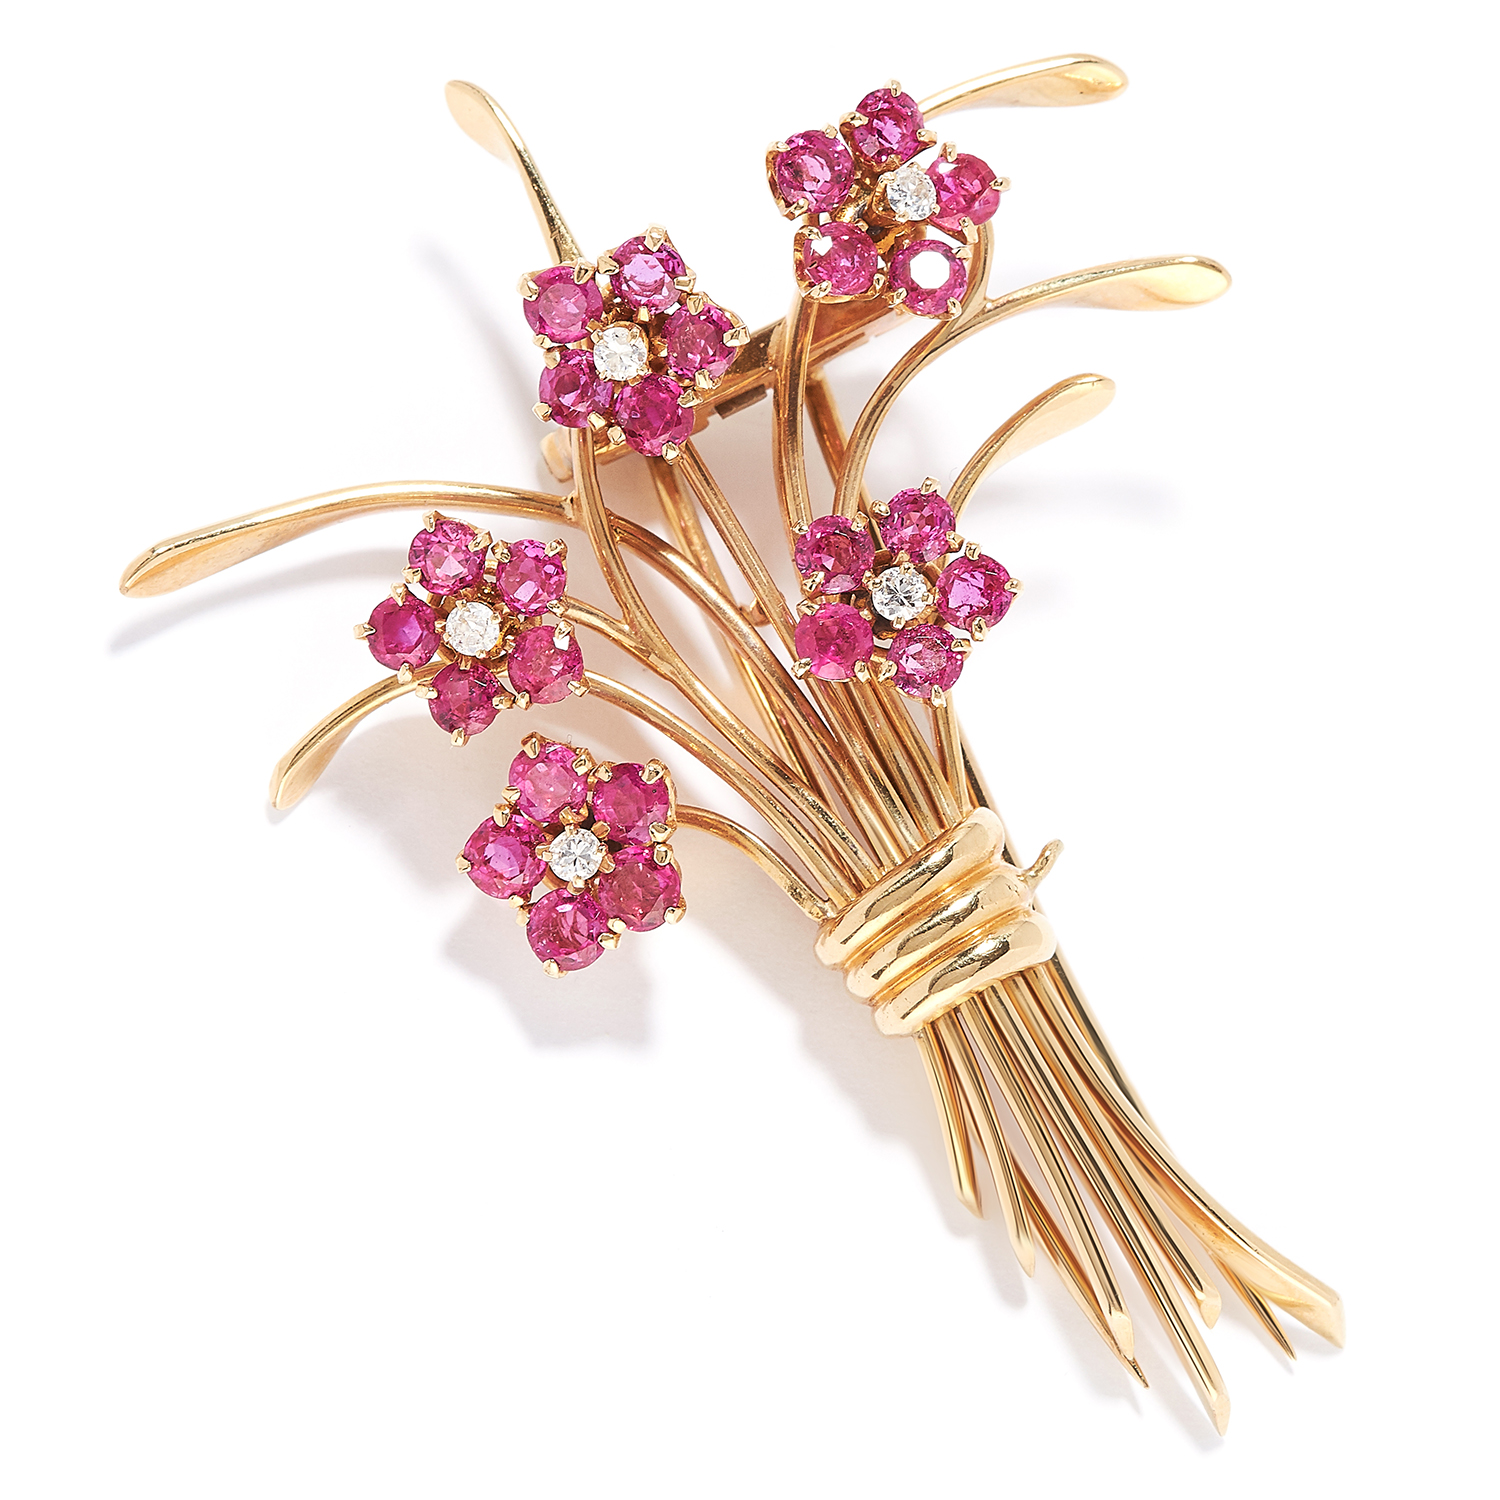 Los 37 - VINTAGE RUBY AND DIAMOND FORGET ME NOT FLOWER BROOCH BROOCH, ATTRIBUTED VAN CLEEF & ARPELS